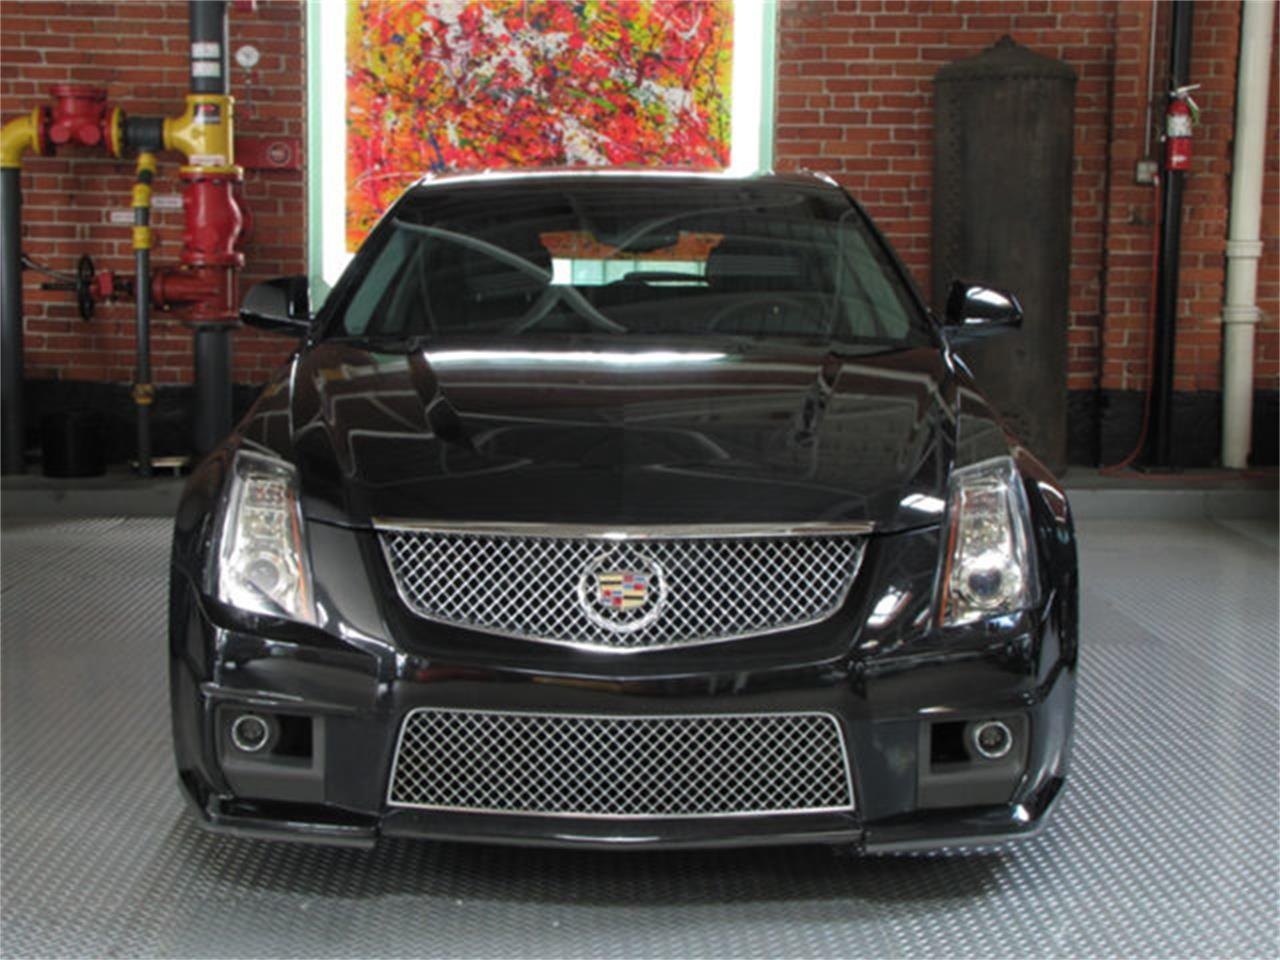 cts cadillac classic hollywood california cc classiccars financing inspection insurance transport